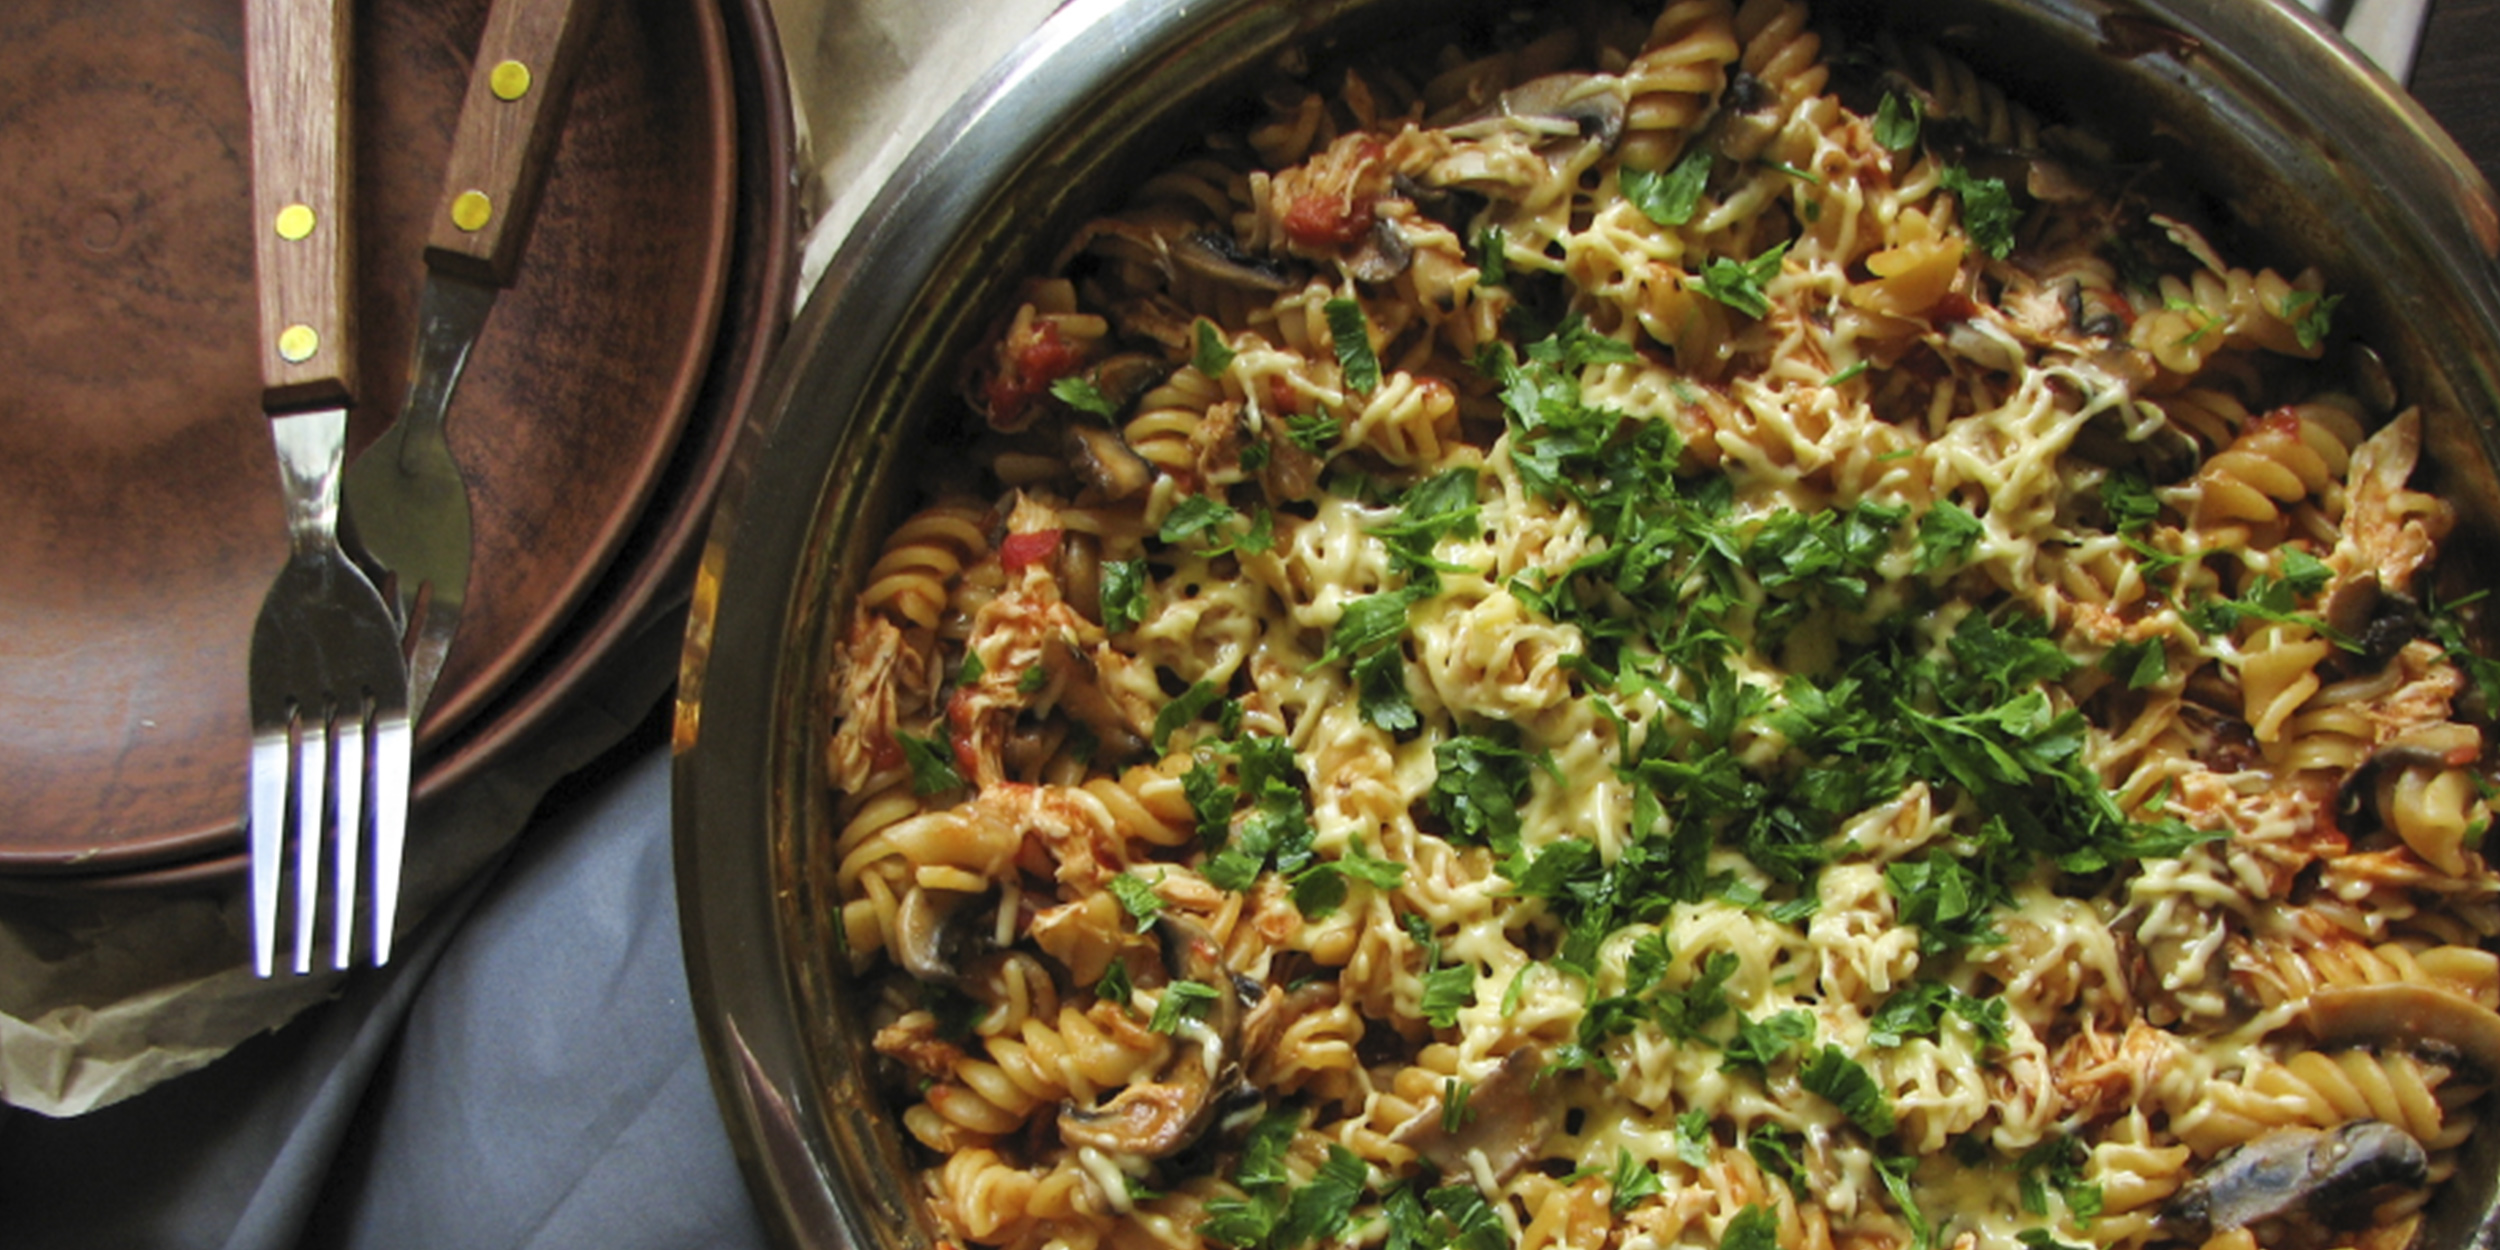 Lifehack For The Lazy: Pasta In One Dish